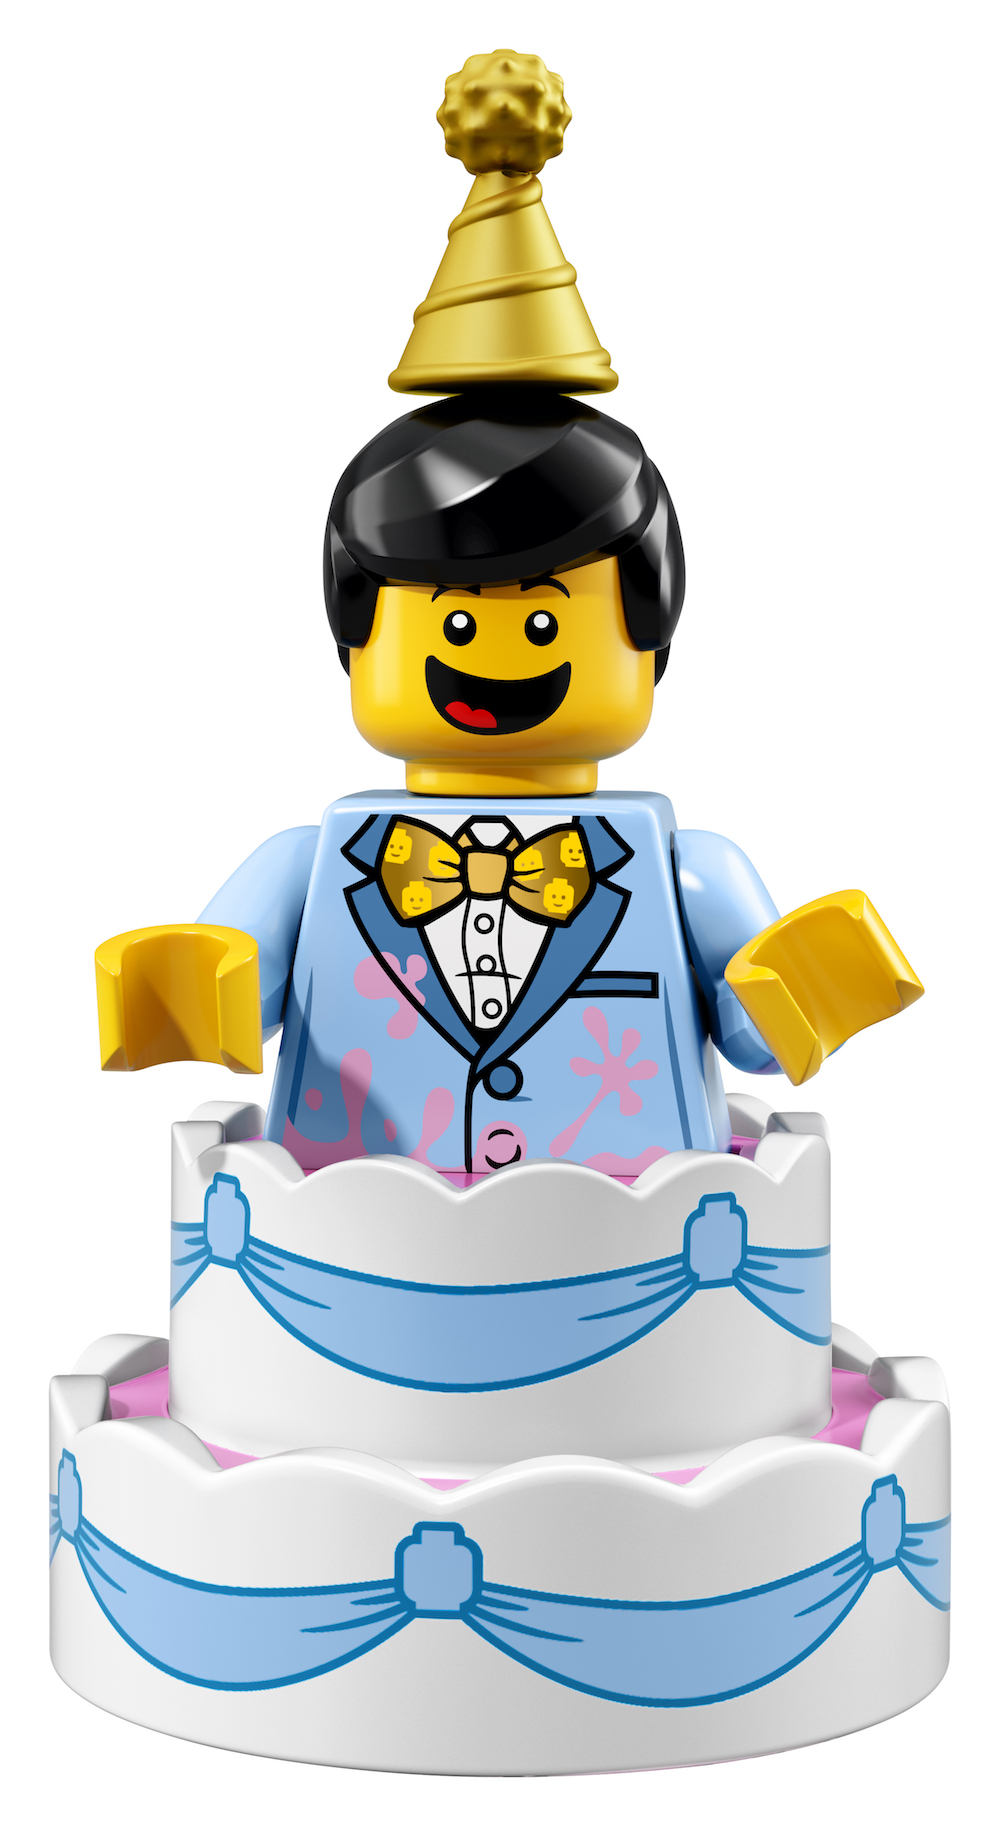 1000x1826 Lego Brings Back Its Very First Minifigure From 1978